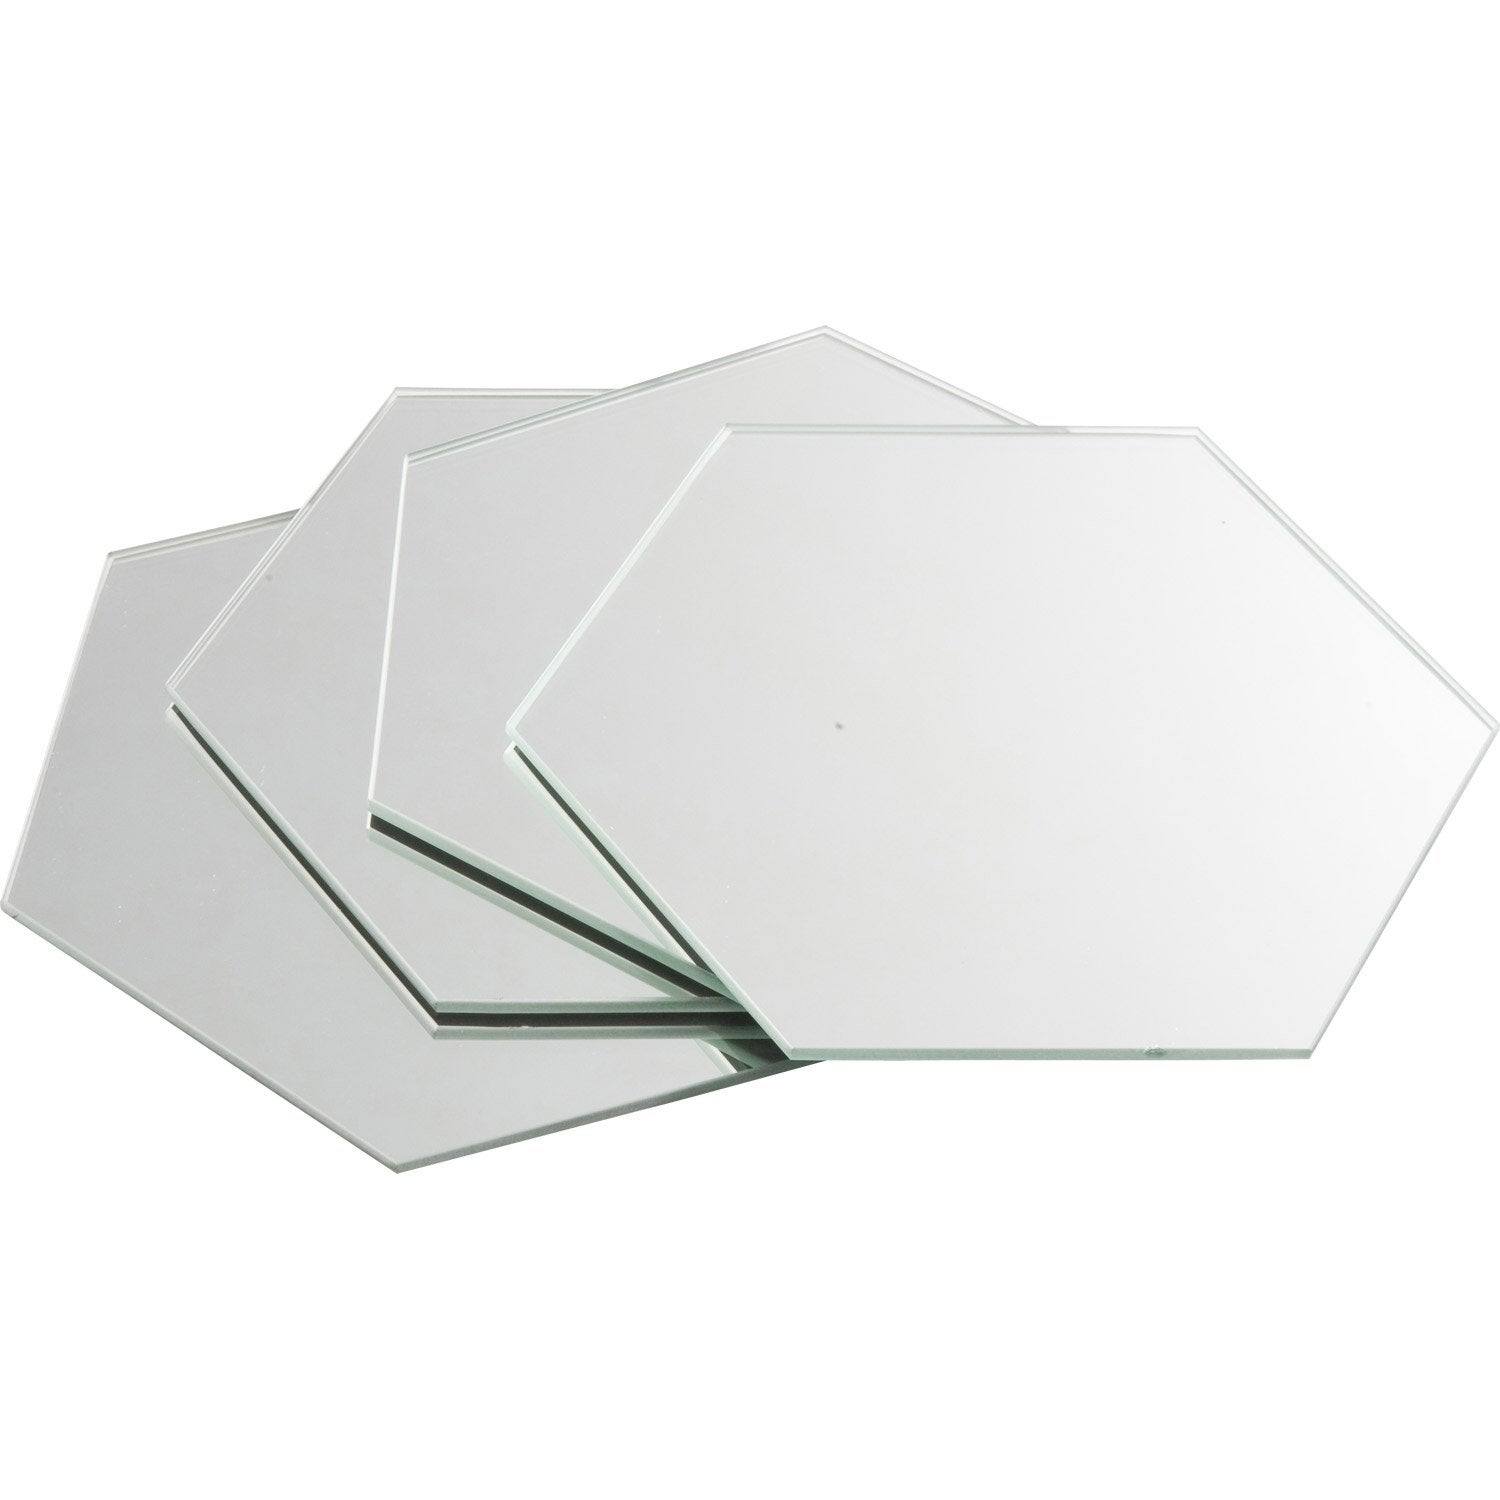 Lot de 4 miroirs hexagonaux sensea 15 x 15 cm leroy merlin for Miroir decoratif leroy merlin